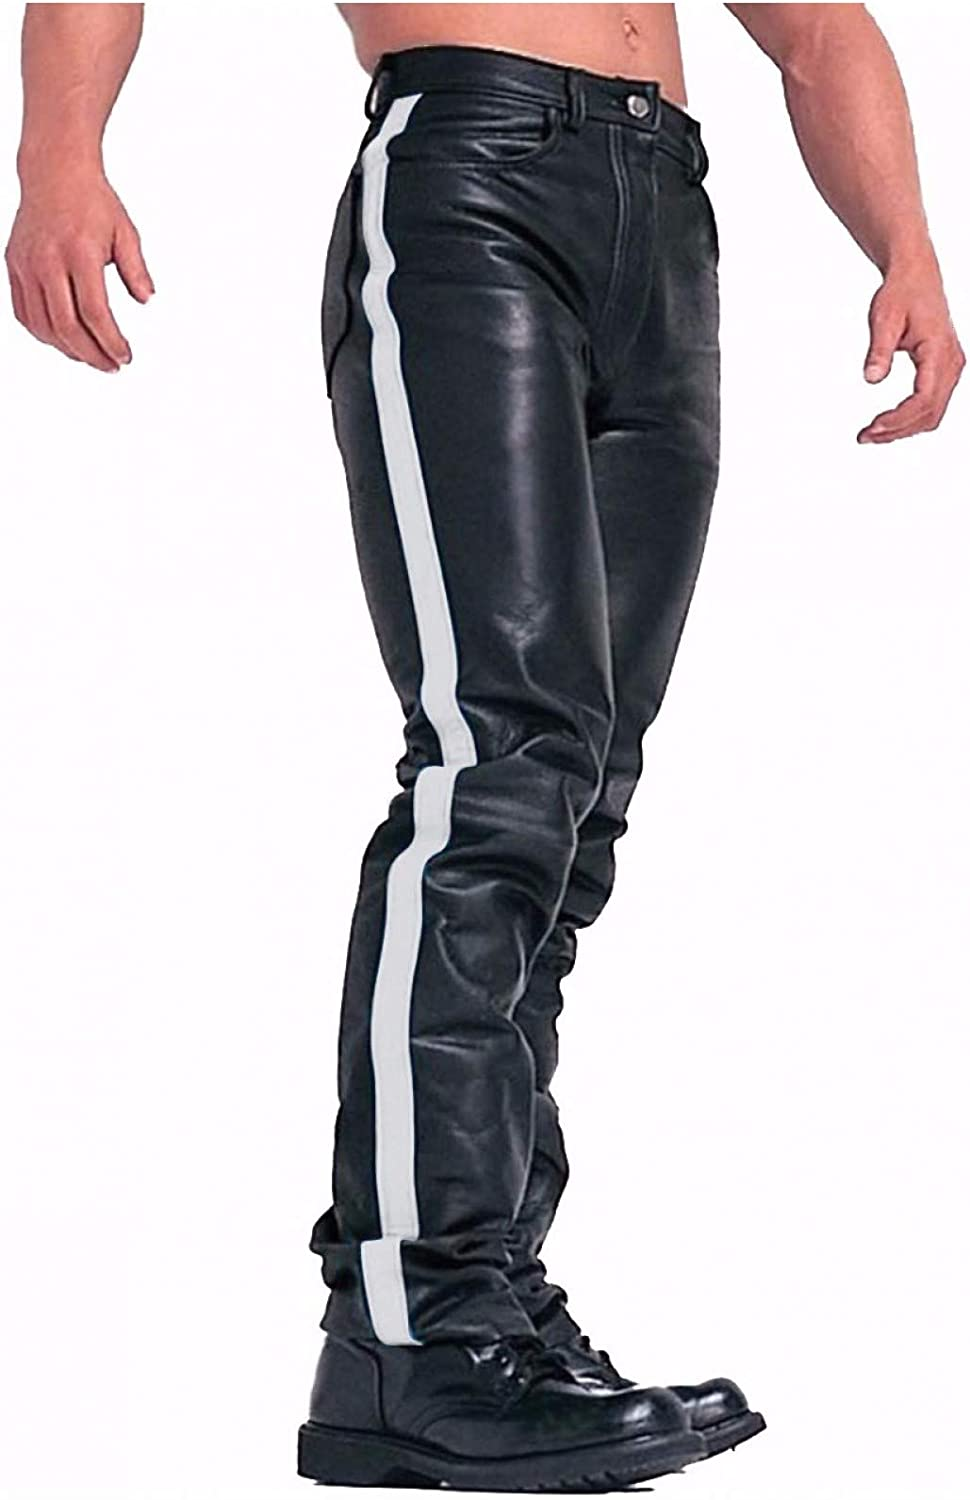 Mens Real Black Cow Leather Jeans Biker Jeans with Stripe Pants Trousers